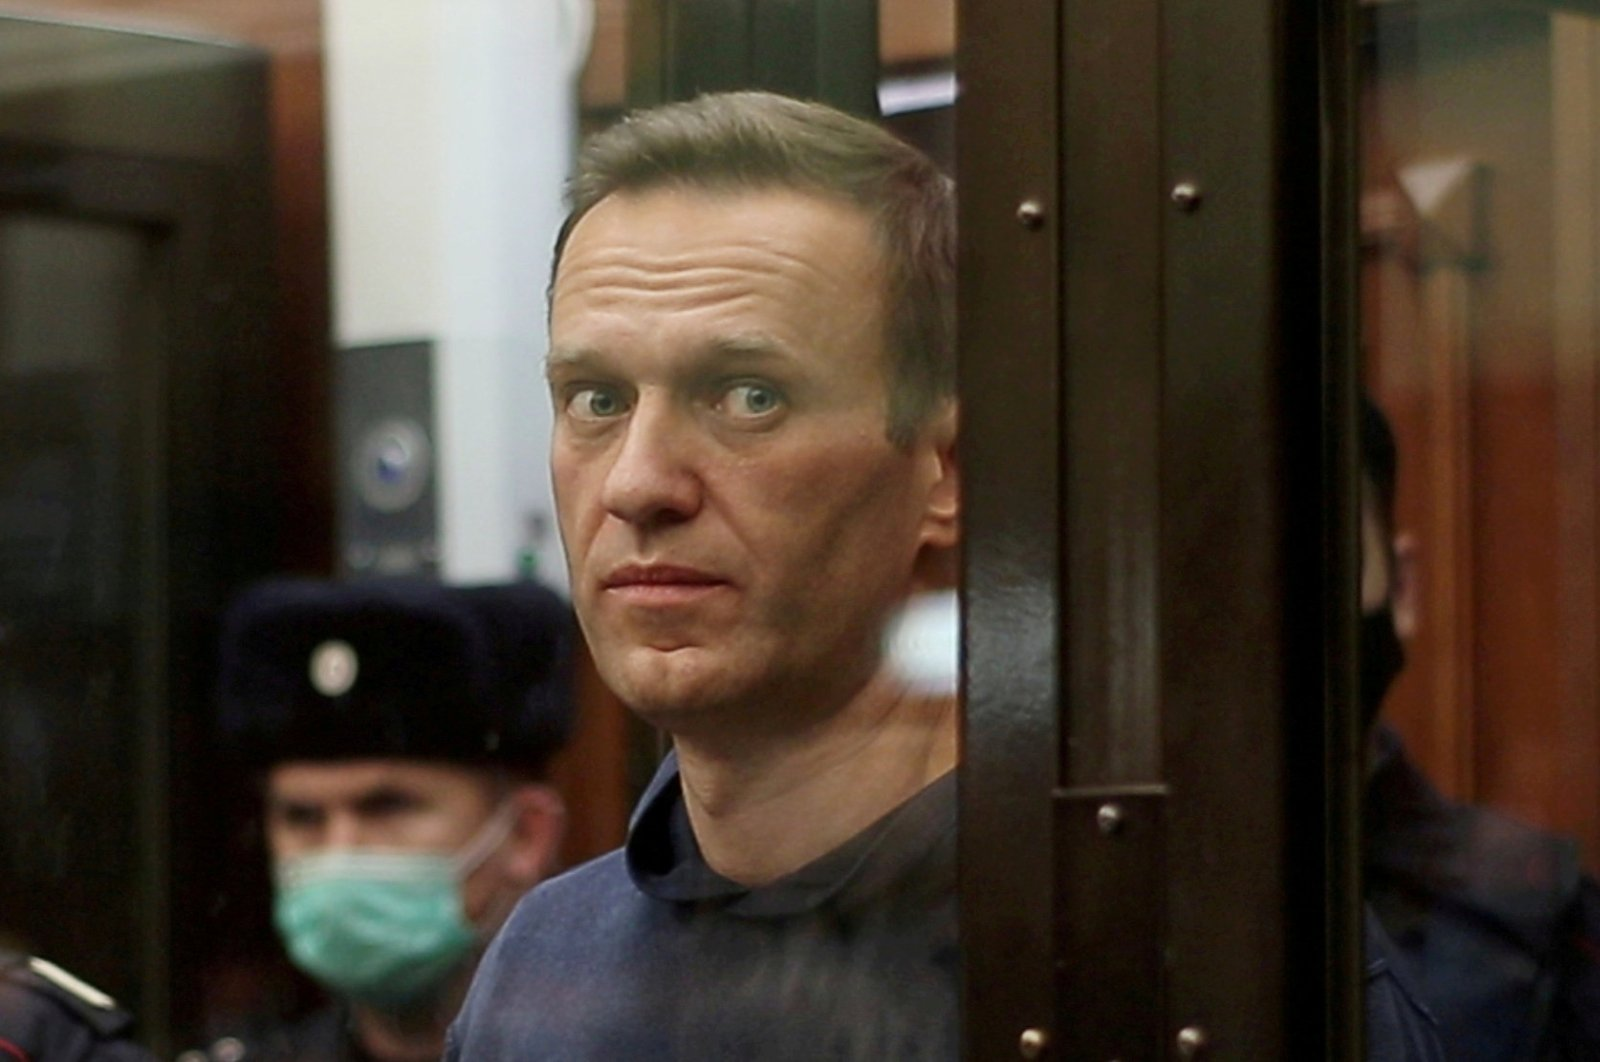 A still image taken from video footage shows Russian opposition leader Alexei Navalny, who is accused of flouting the terms of a suspended sentence for embezzlement, inside a defendant dock during the announcement of a court verdict in Moscow, Russia, Feb. 2, 2021. (Press service of Simonovsky District Court via Reuters)